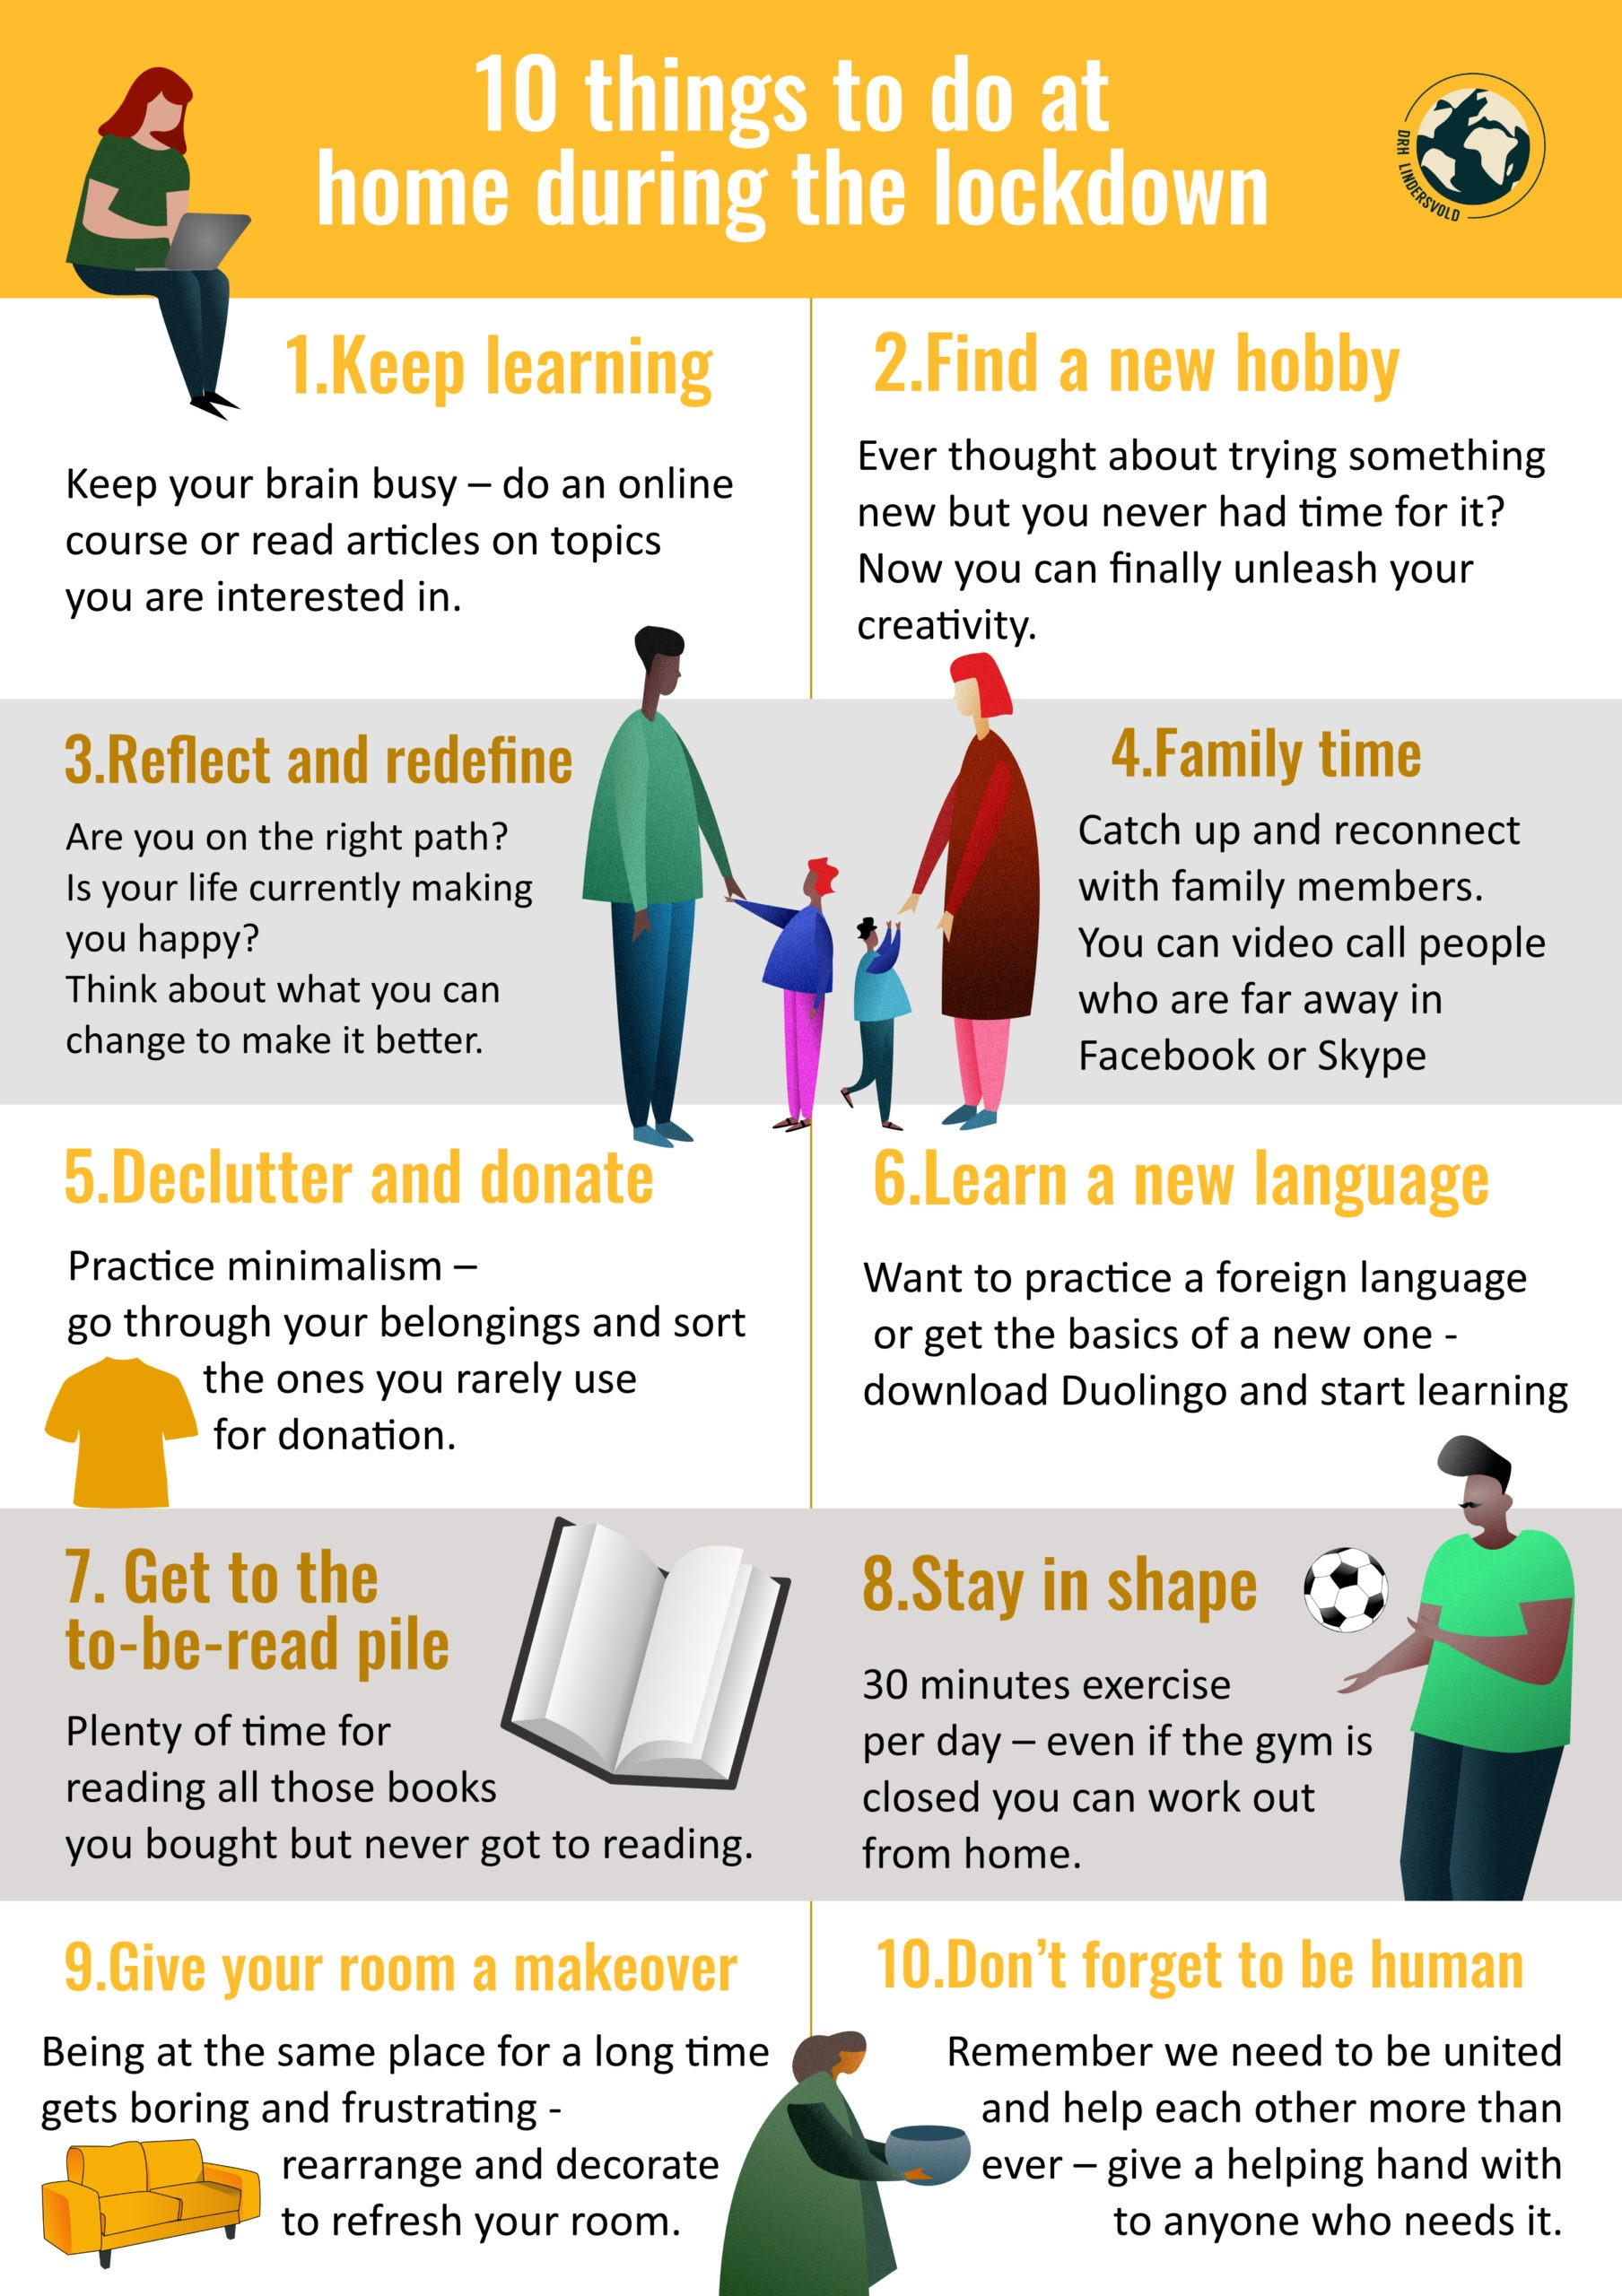 10 things to do during at home during the lockdown. - DRH Lindersvold